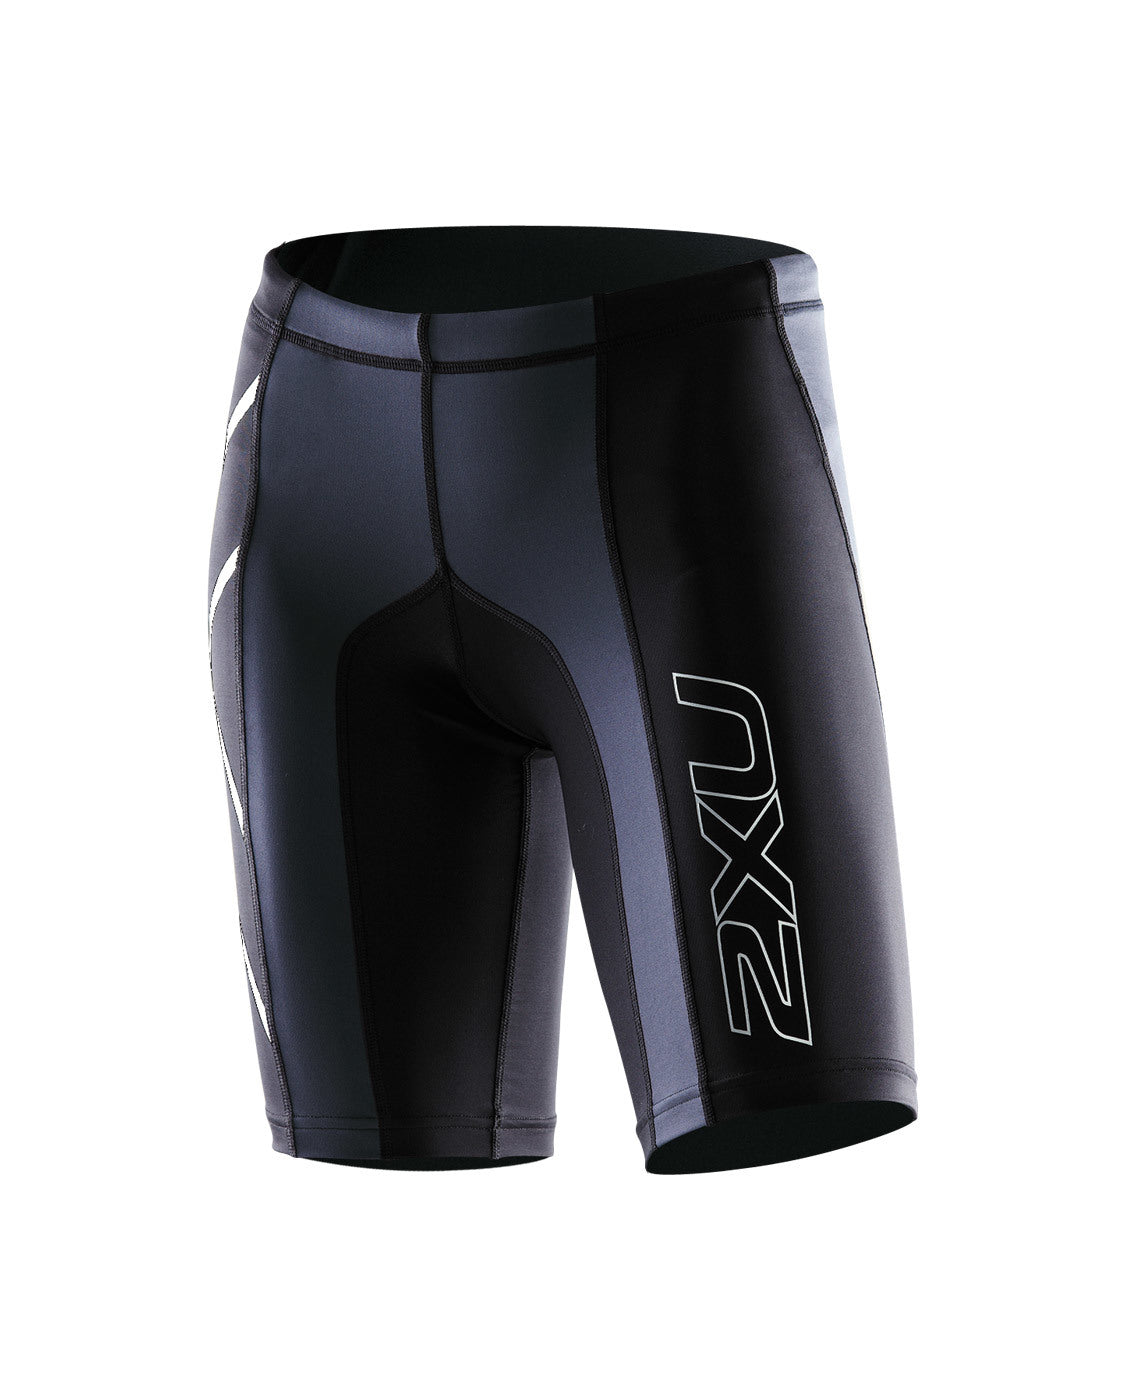 2XU Elite Short Women Black